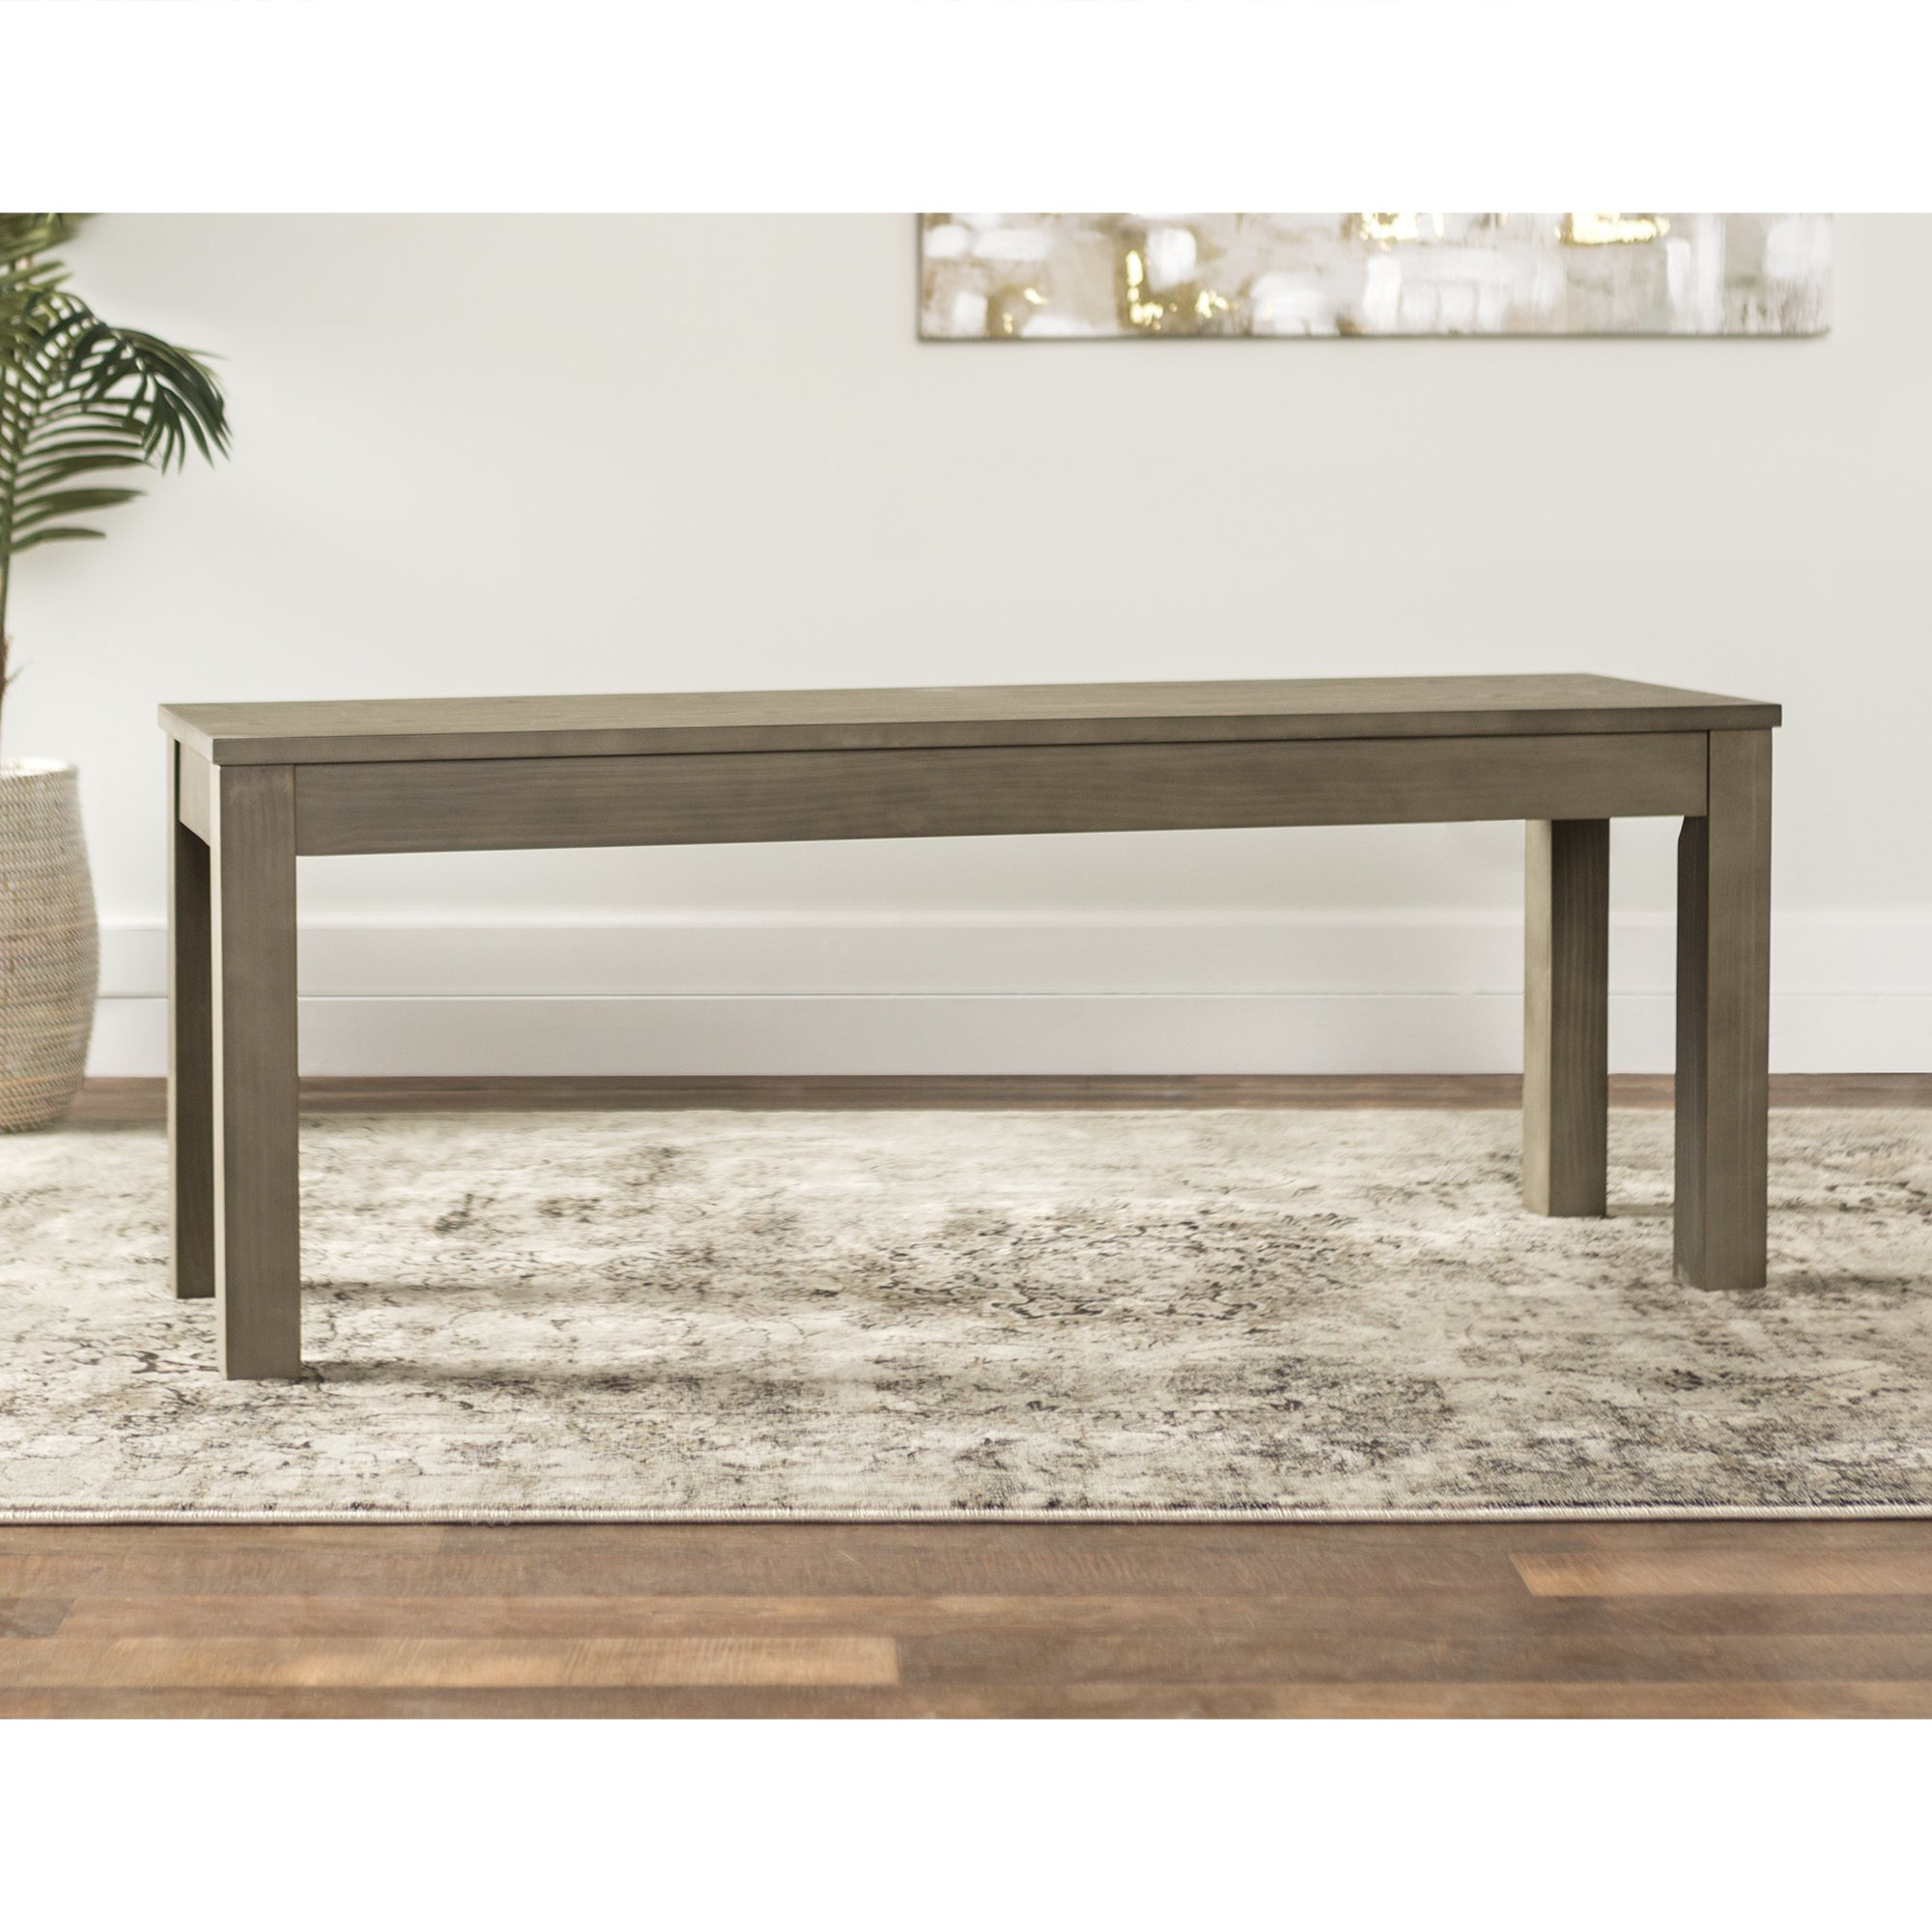 WE Furniture Aged Grey Homestead Wood Dining Bench - 48''